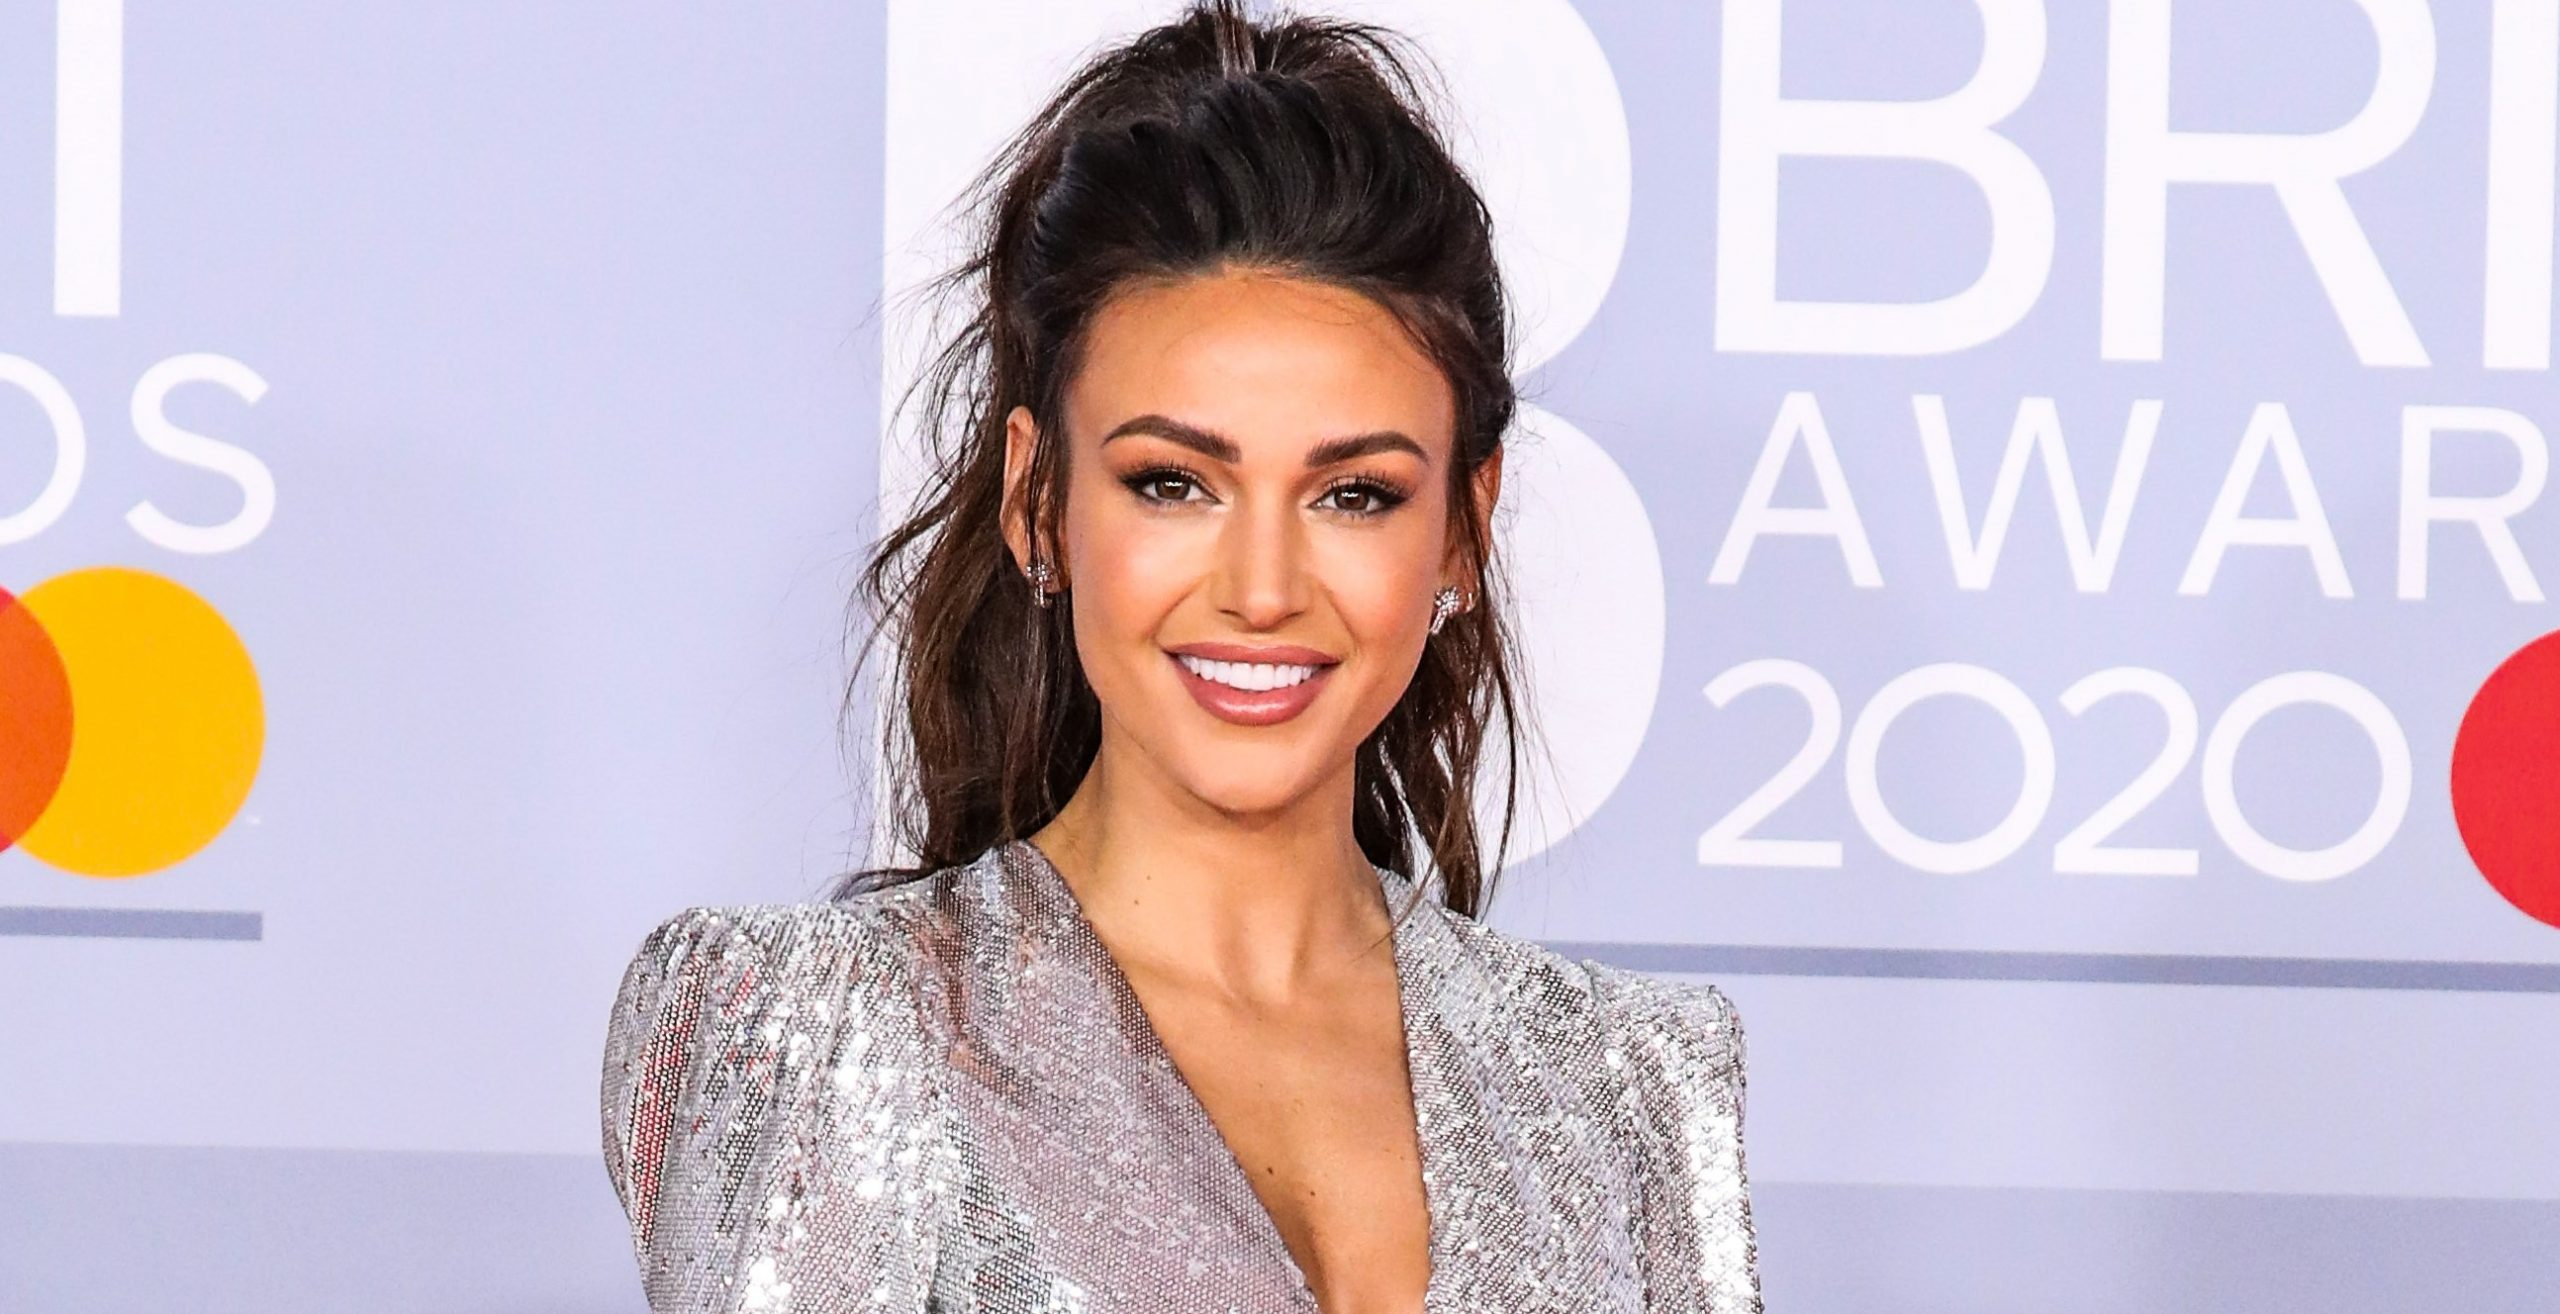 Michelle Keegan hints she could return to her role in Our Girl in the future